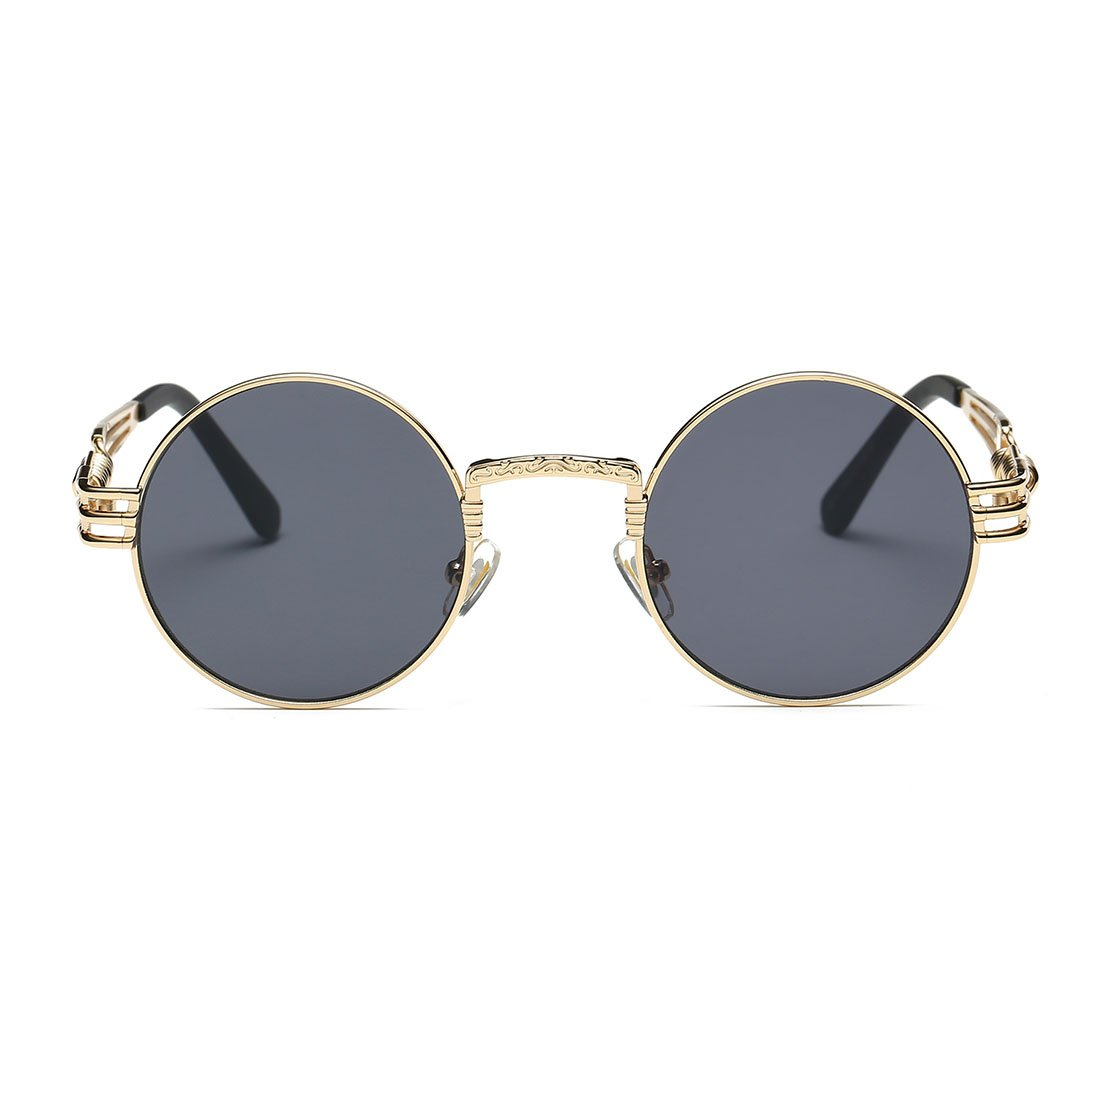 AEVOGUE Sunglasses Steampunk Style Round Metal Frame Unisex Glasses AE0539 (Gold&Black, 48) by AEVOGUE (Image #3)